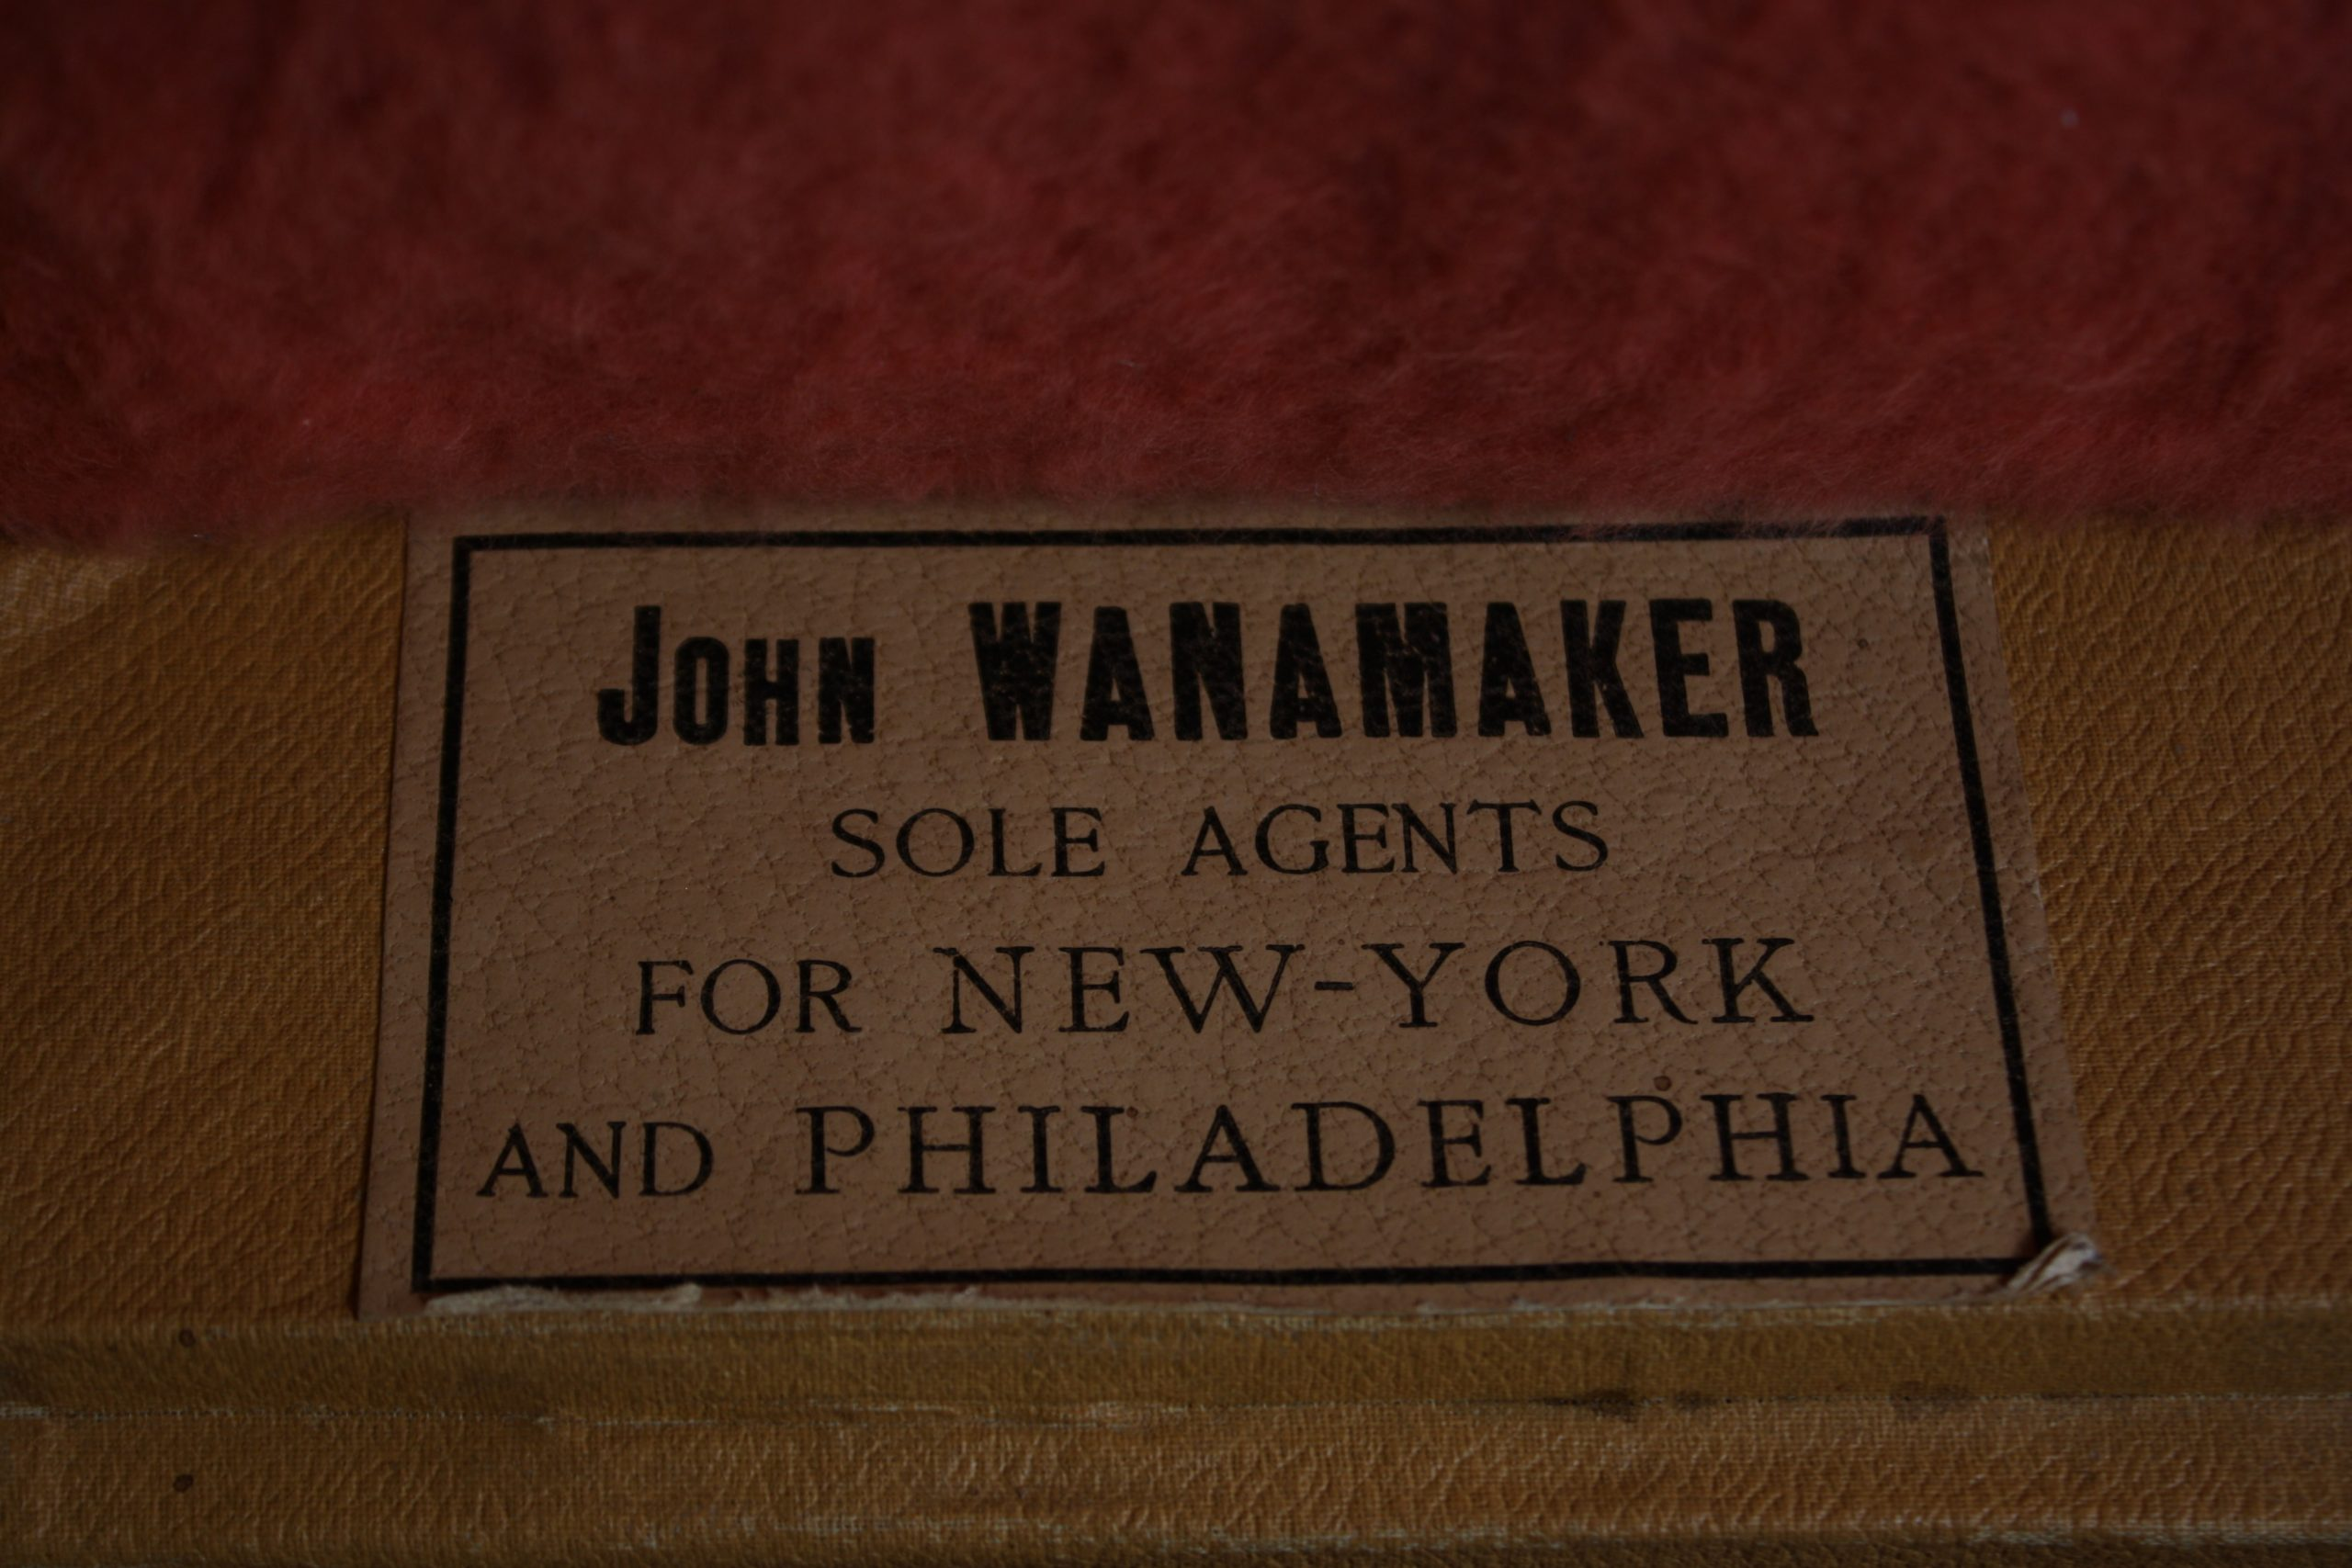 john-wanamaker-sole-agents-for-new-york-trunk-louis-vuitton